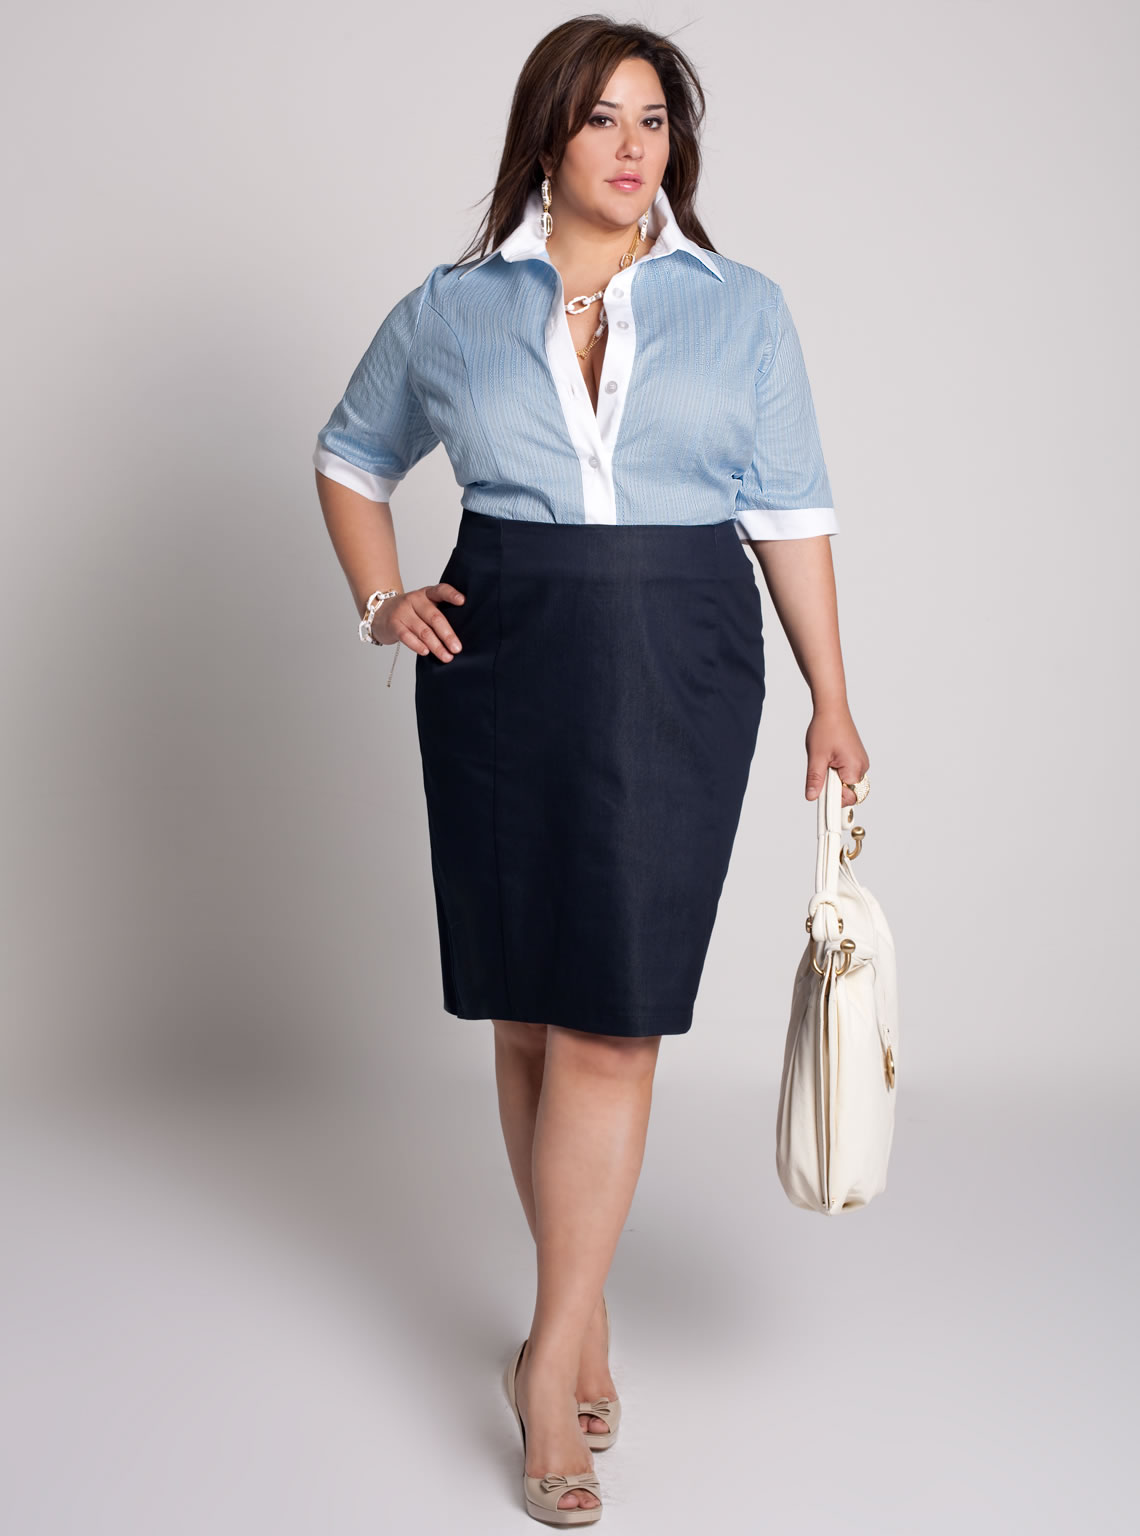 Women's Plus Size Clothing Australia's online fashion destination for plus size ladies Discover the latest styles in plus size dresses, skirts, pants, jackets, accessories and much more when you shop online at My Size.